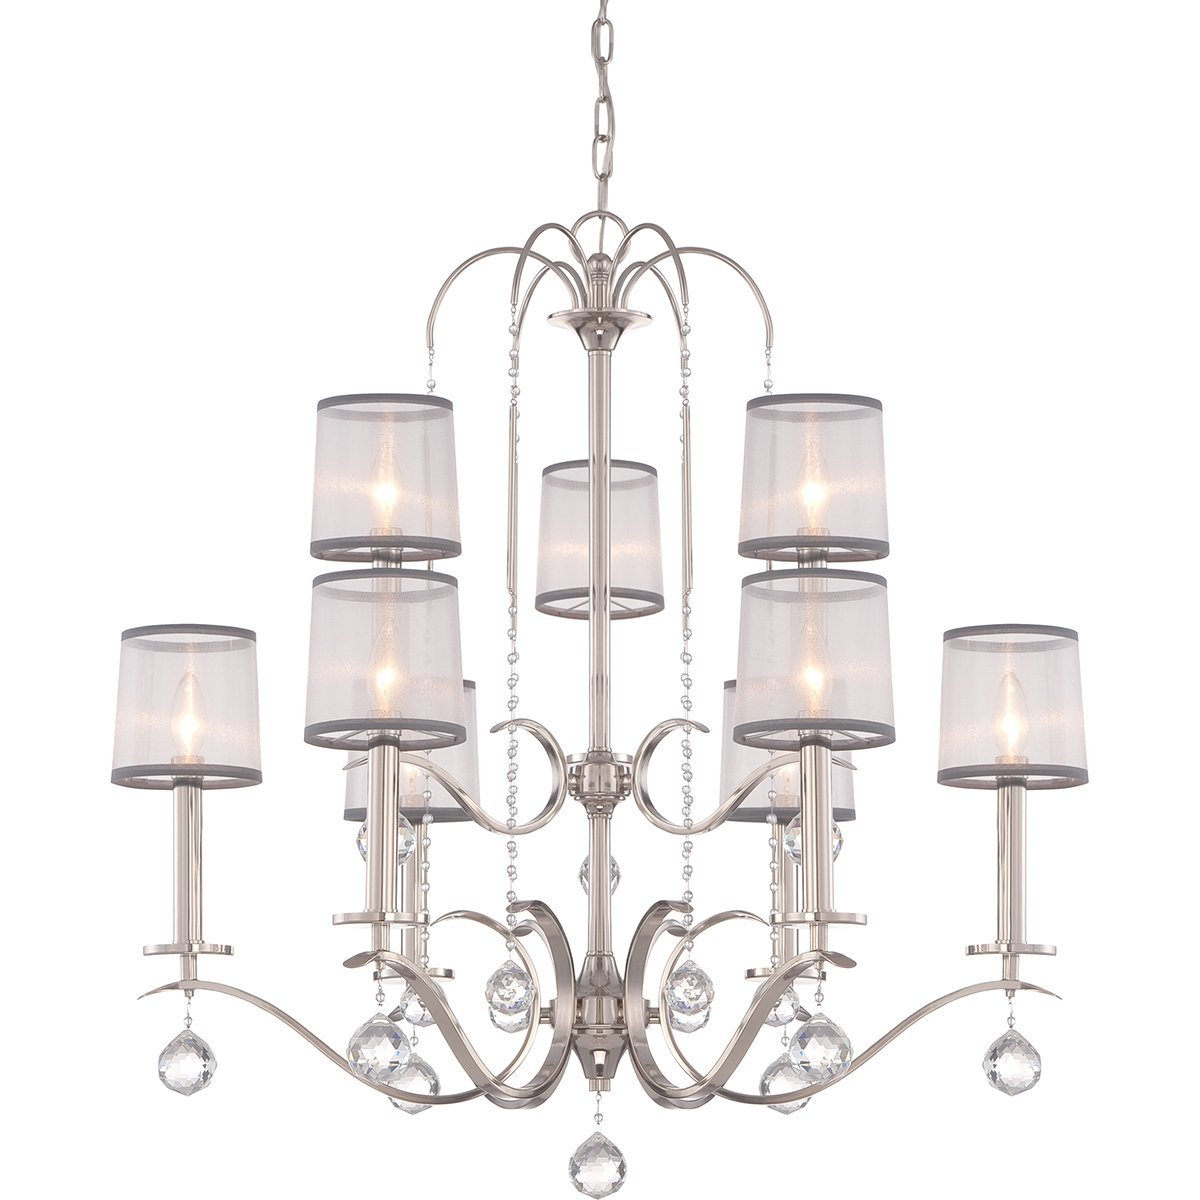 Shop now whitney 9lt two tier chandelier by quoizel dandelion quoizel lighting whitney 9lt two tier chandelier by quoizel arubaitofo Image collections